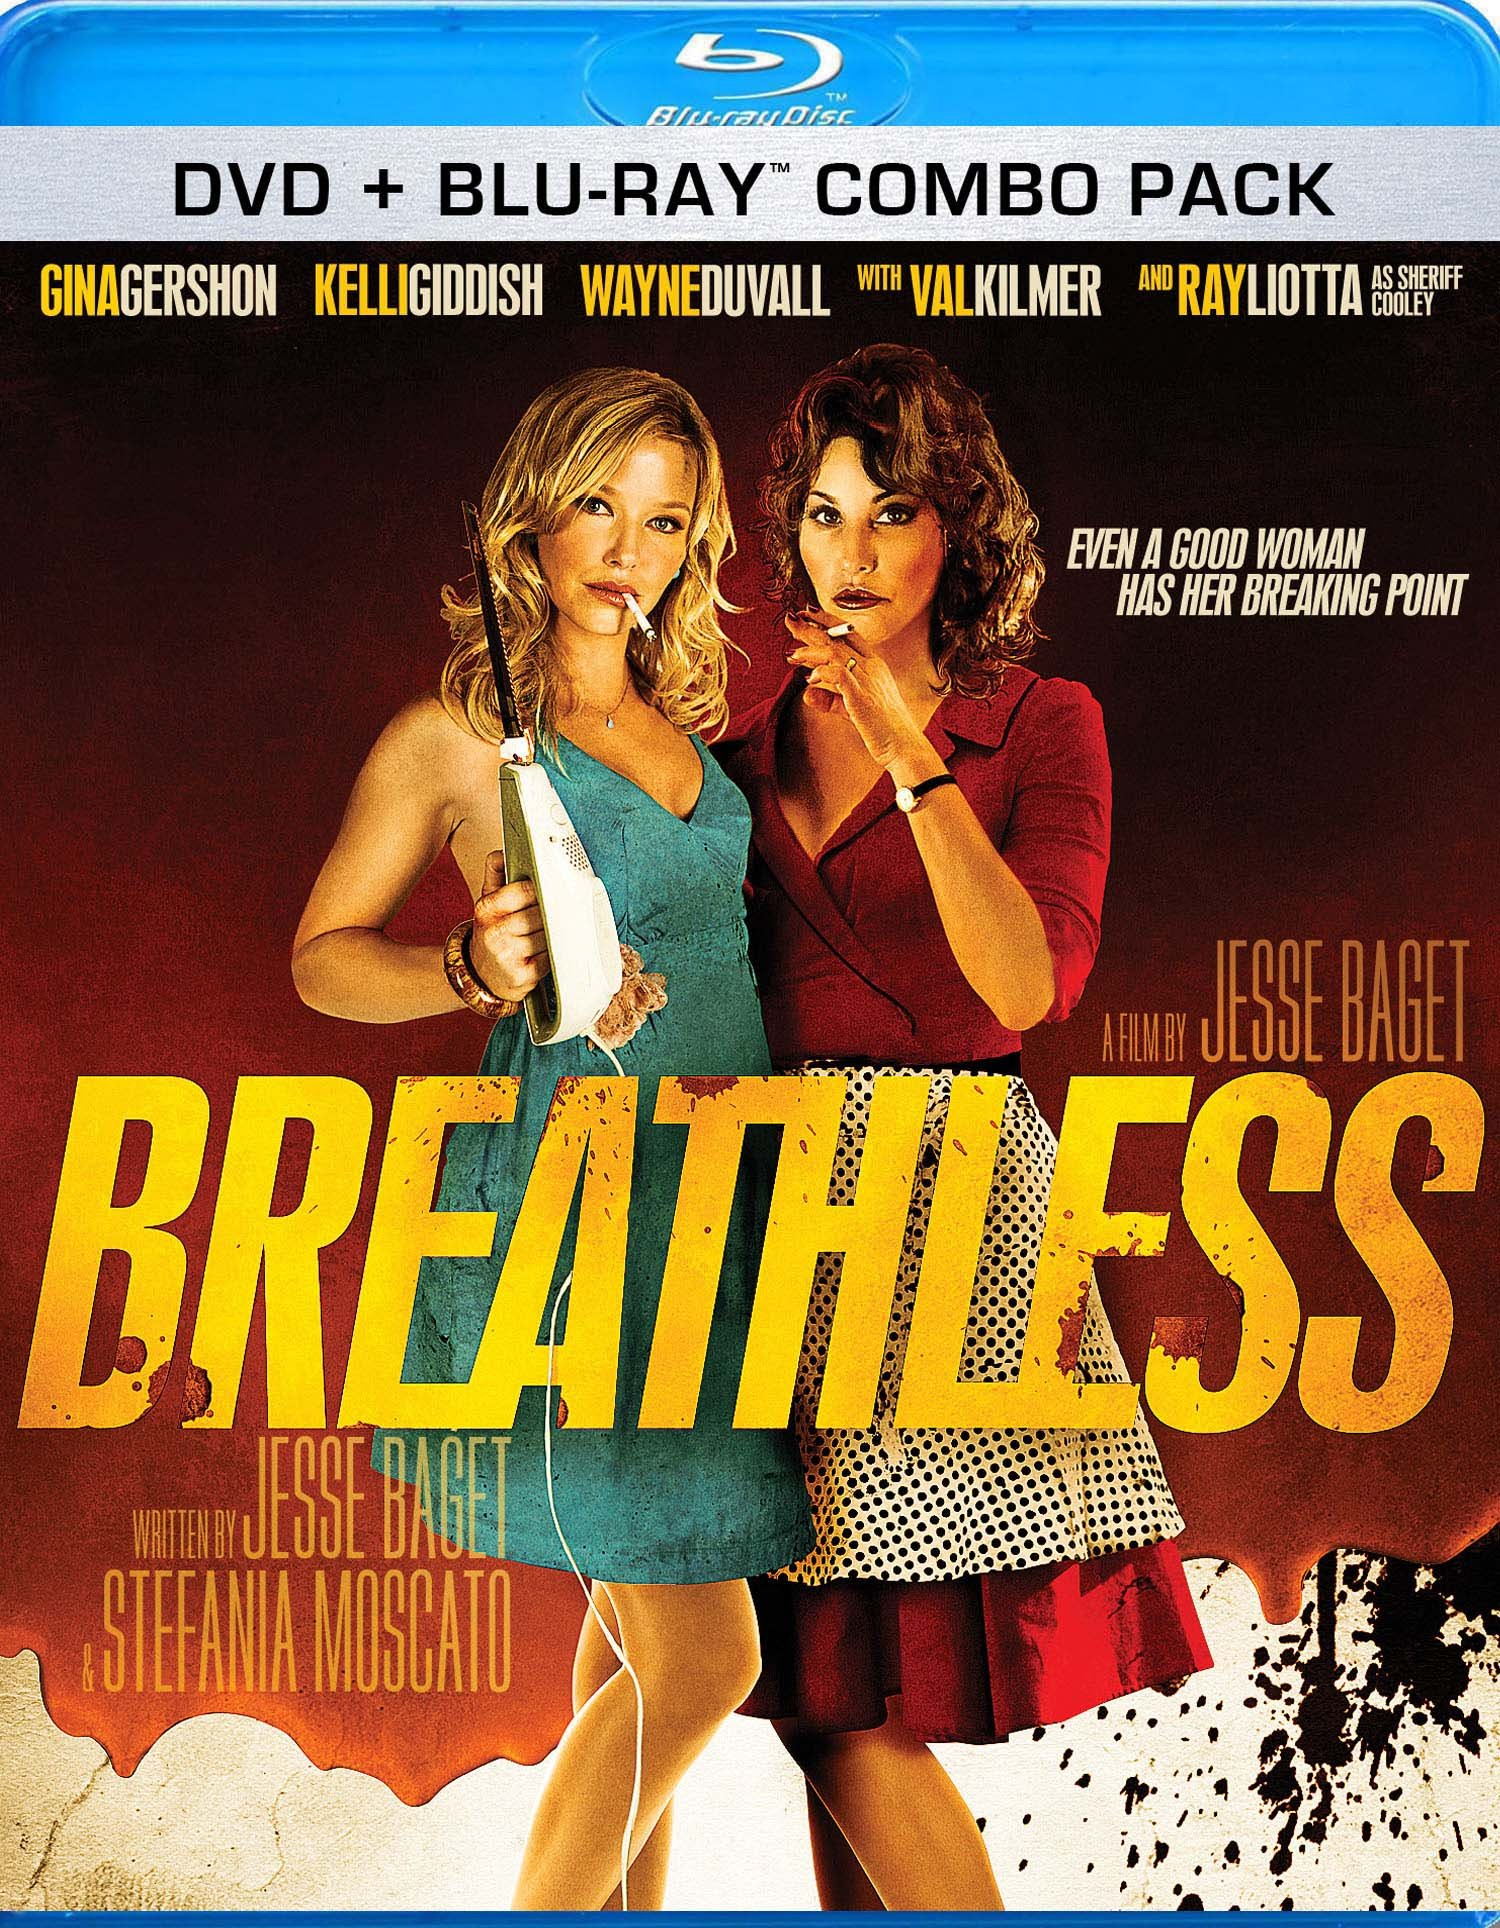 Breathless (2012) Blu-Ray Review